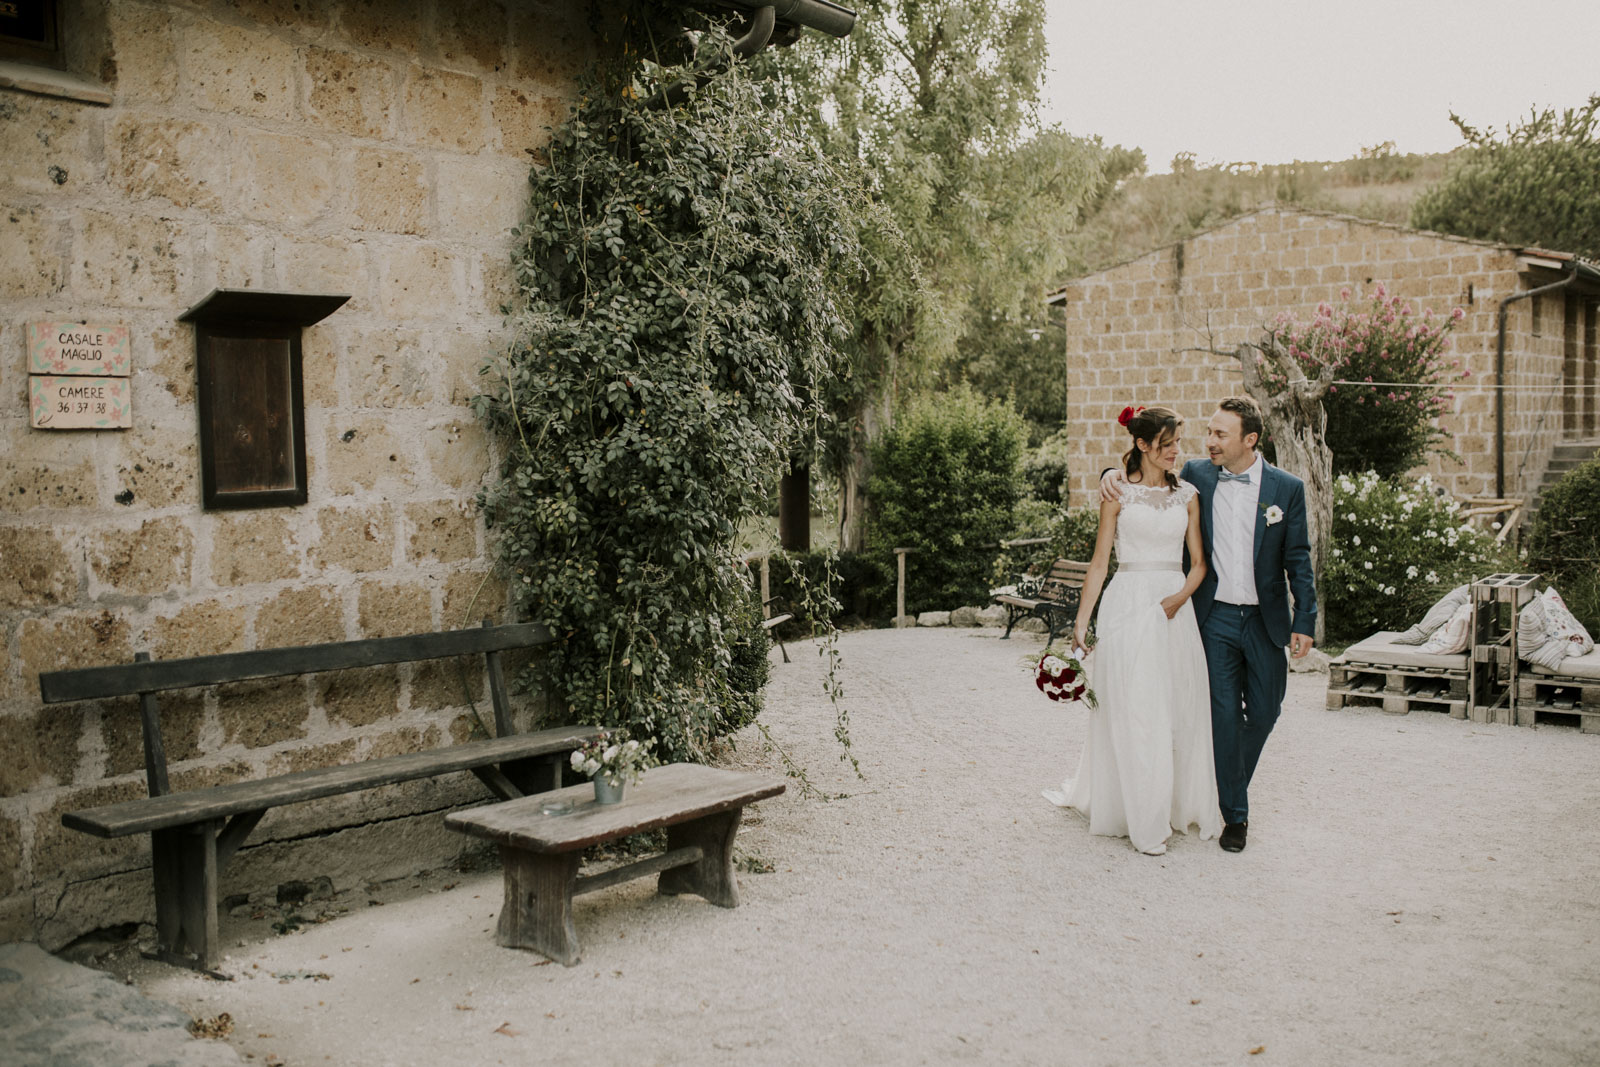 Bride and groom walk around the outside of the Villa in Italy by Michele Abriola